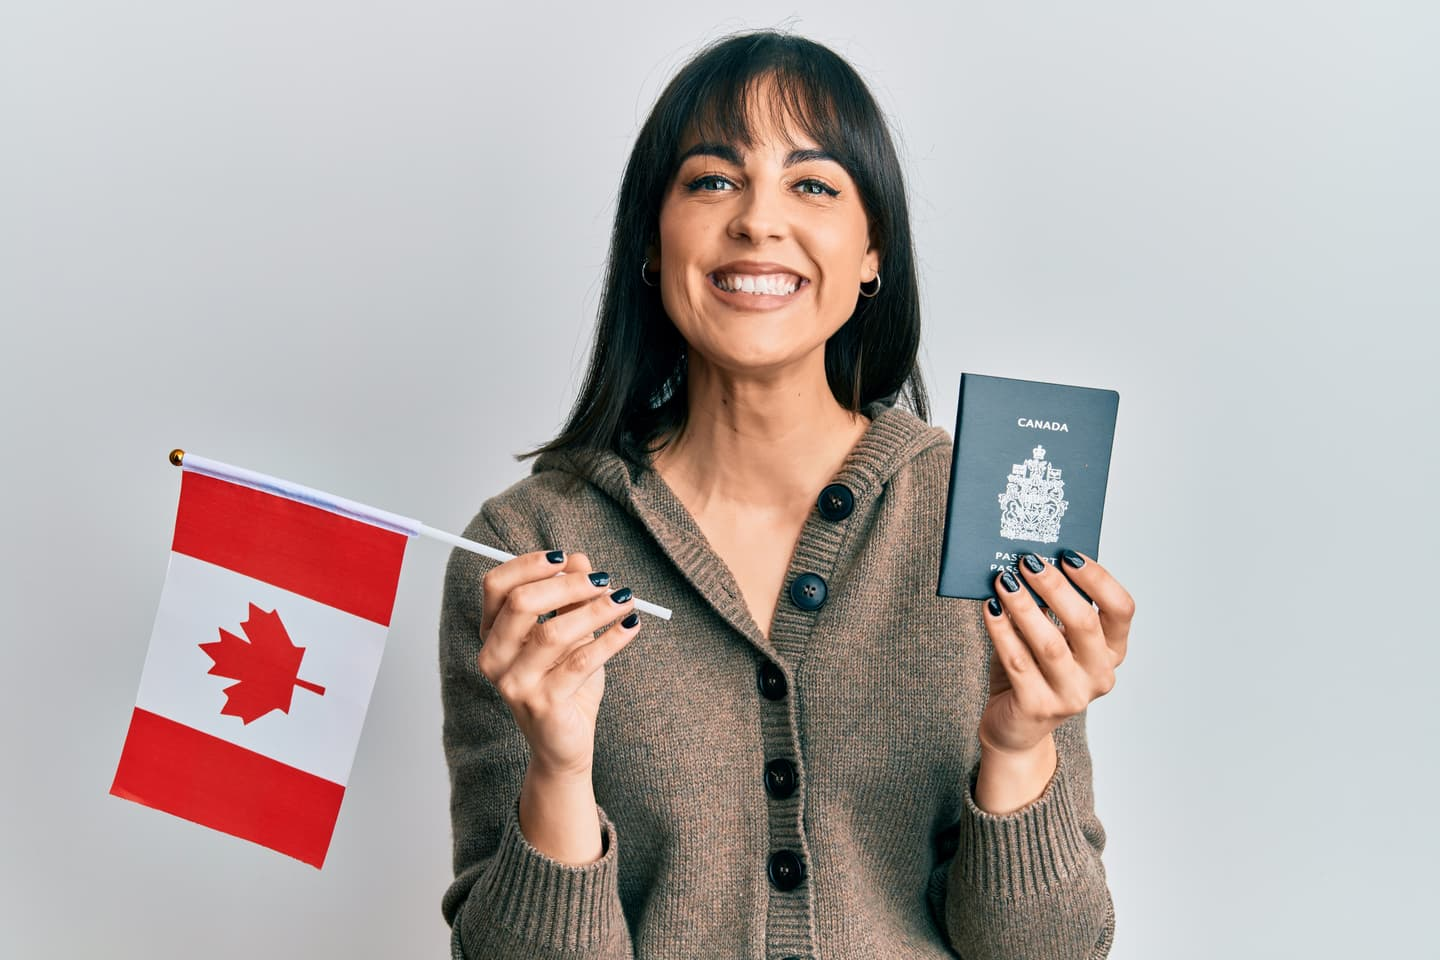 Woman holding Canadian flag and passport